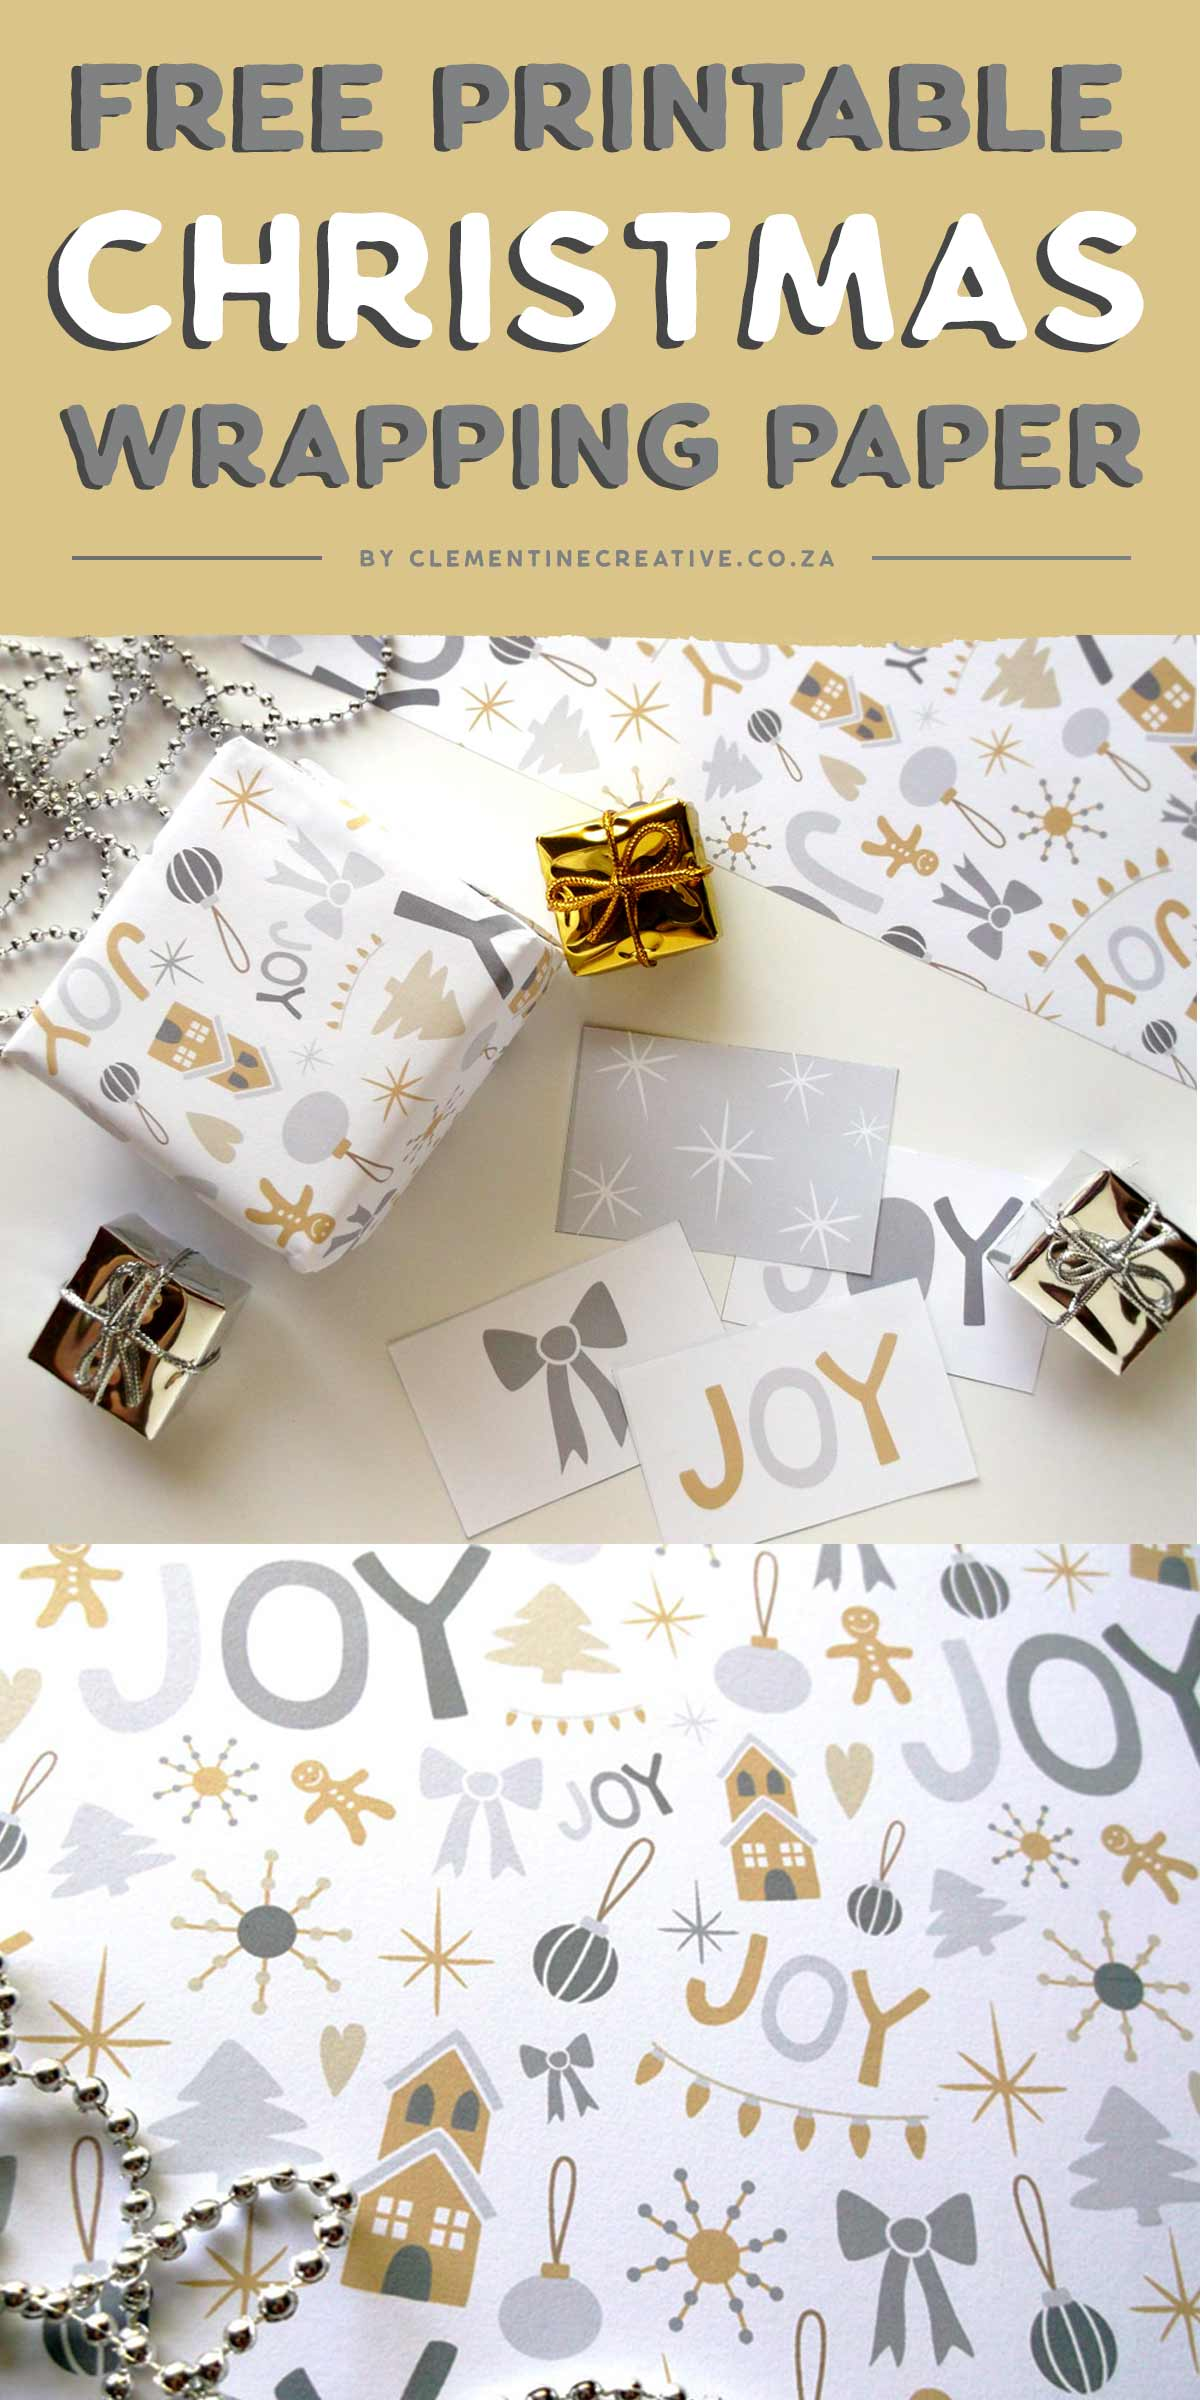 photograph relating to Printable Christmas Wrapping Paper referred to as Absolutely free Printable Xmas Wrapping Paper and Tags